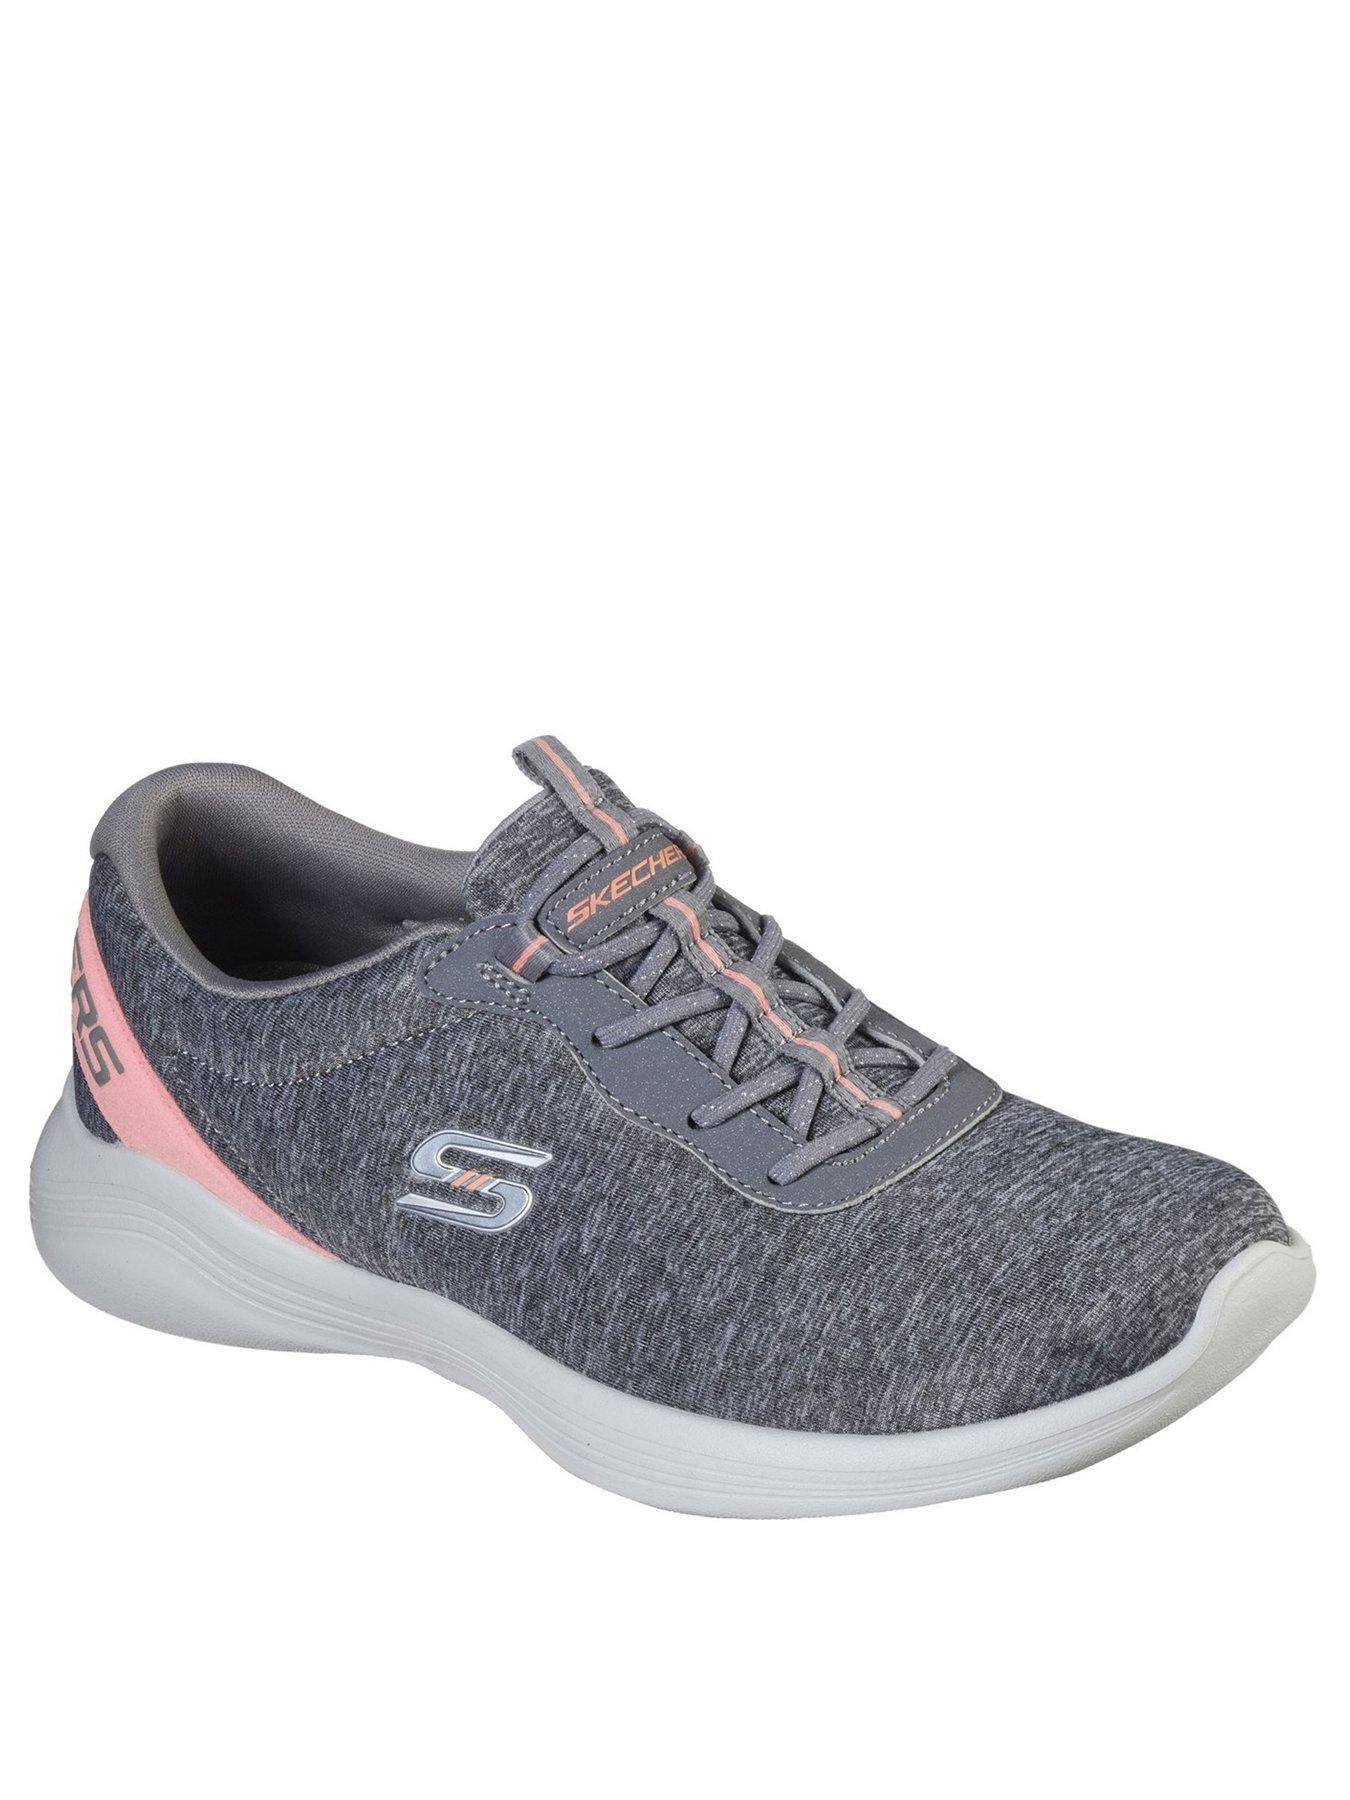 Grey | Skechers | Shoes \u0026 boots | Women